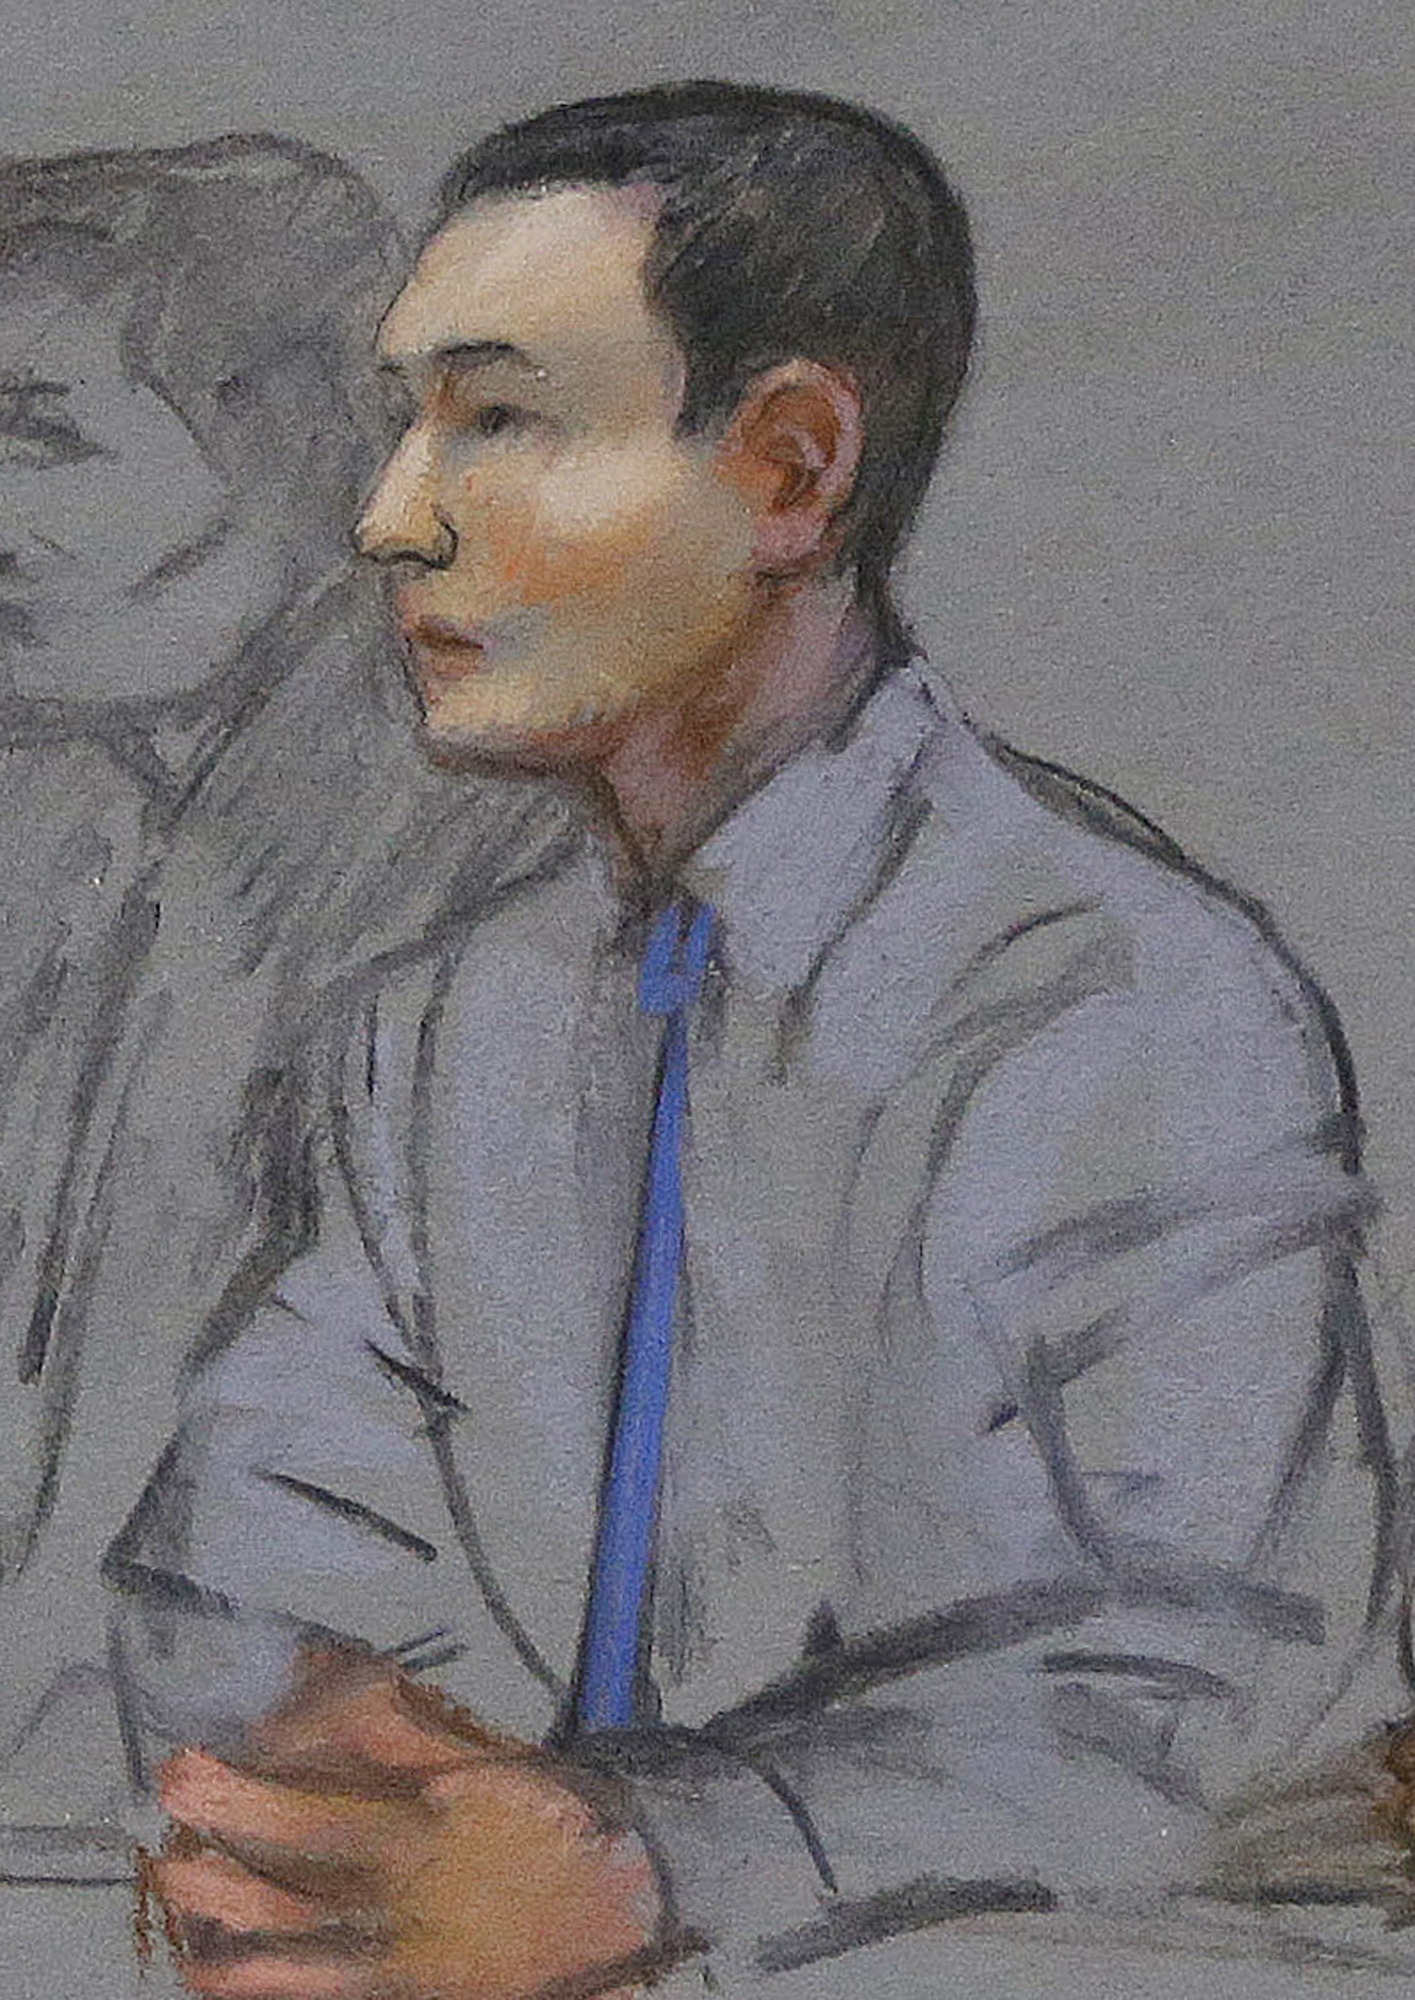 In this courtroom sketch, defendant Azamat Tazhayakov, a college friend of Boston Marathon bombing suspect Dzhokhar Tsarnaev, sits during a hearing in federal court in Boston on May 13, 2014.